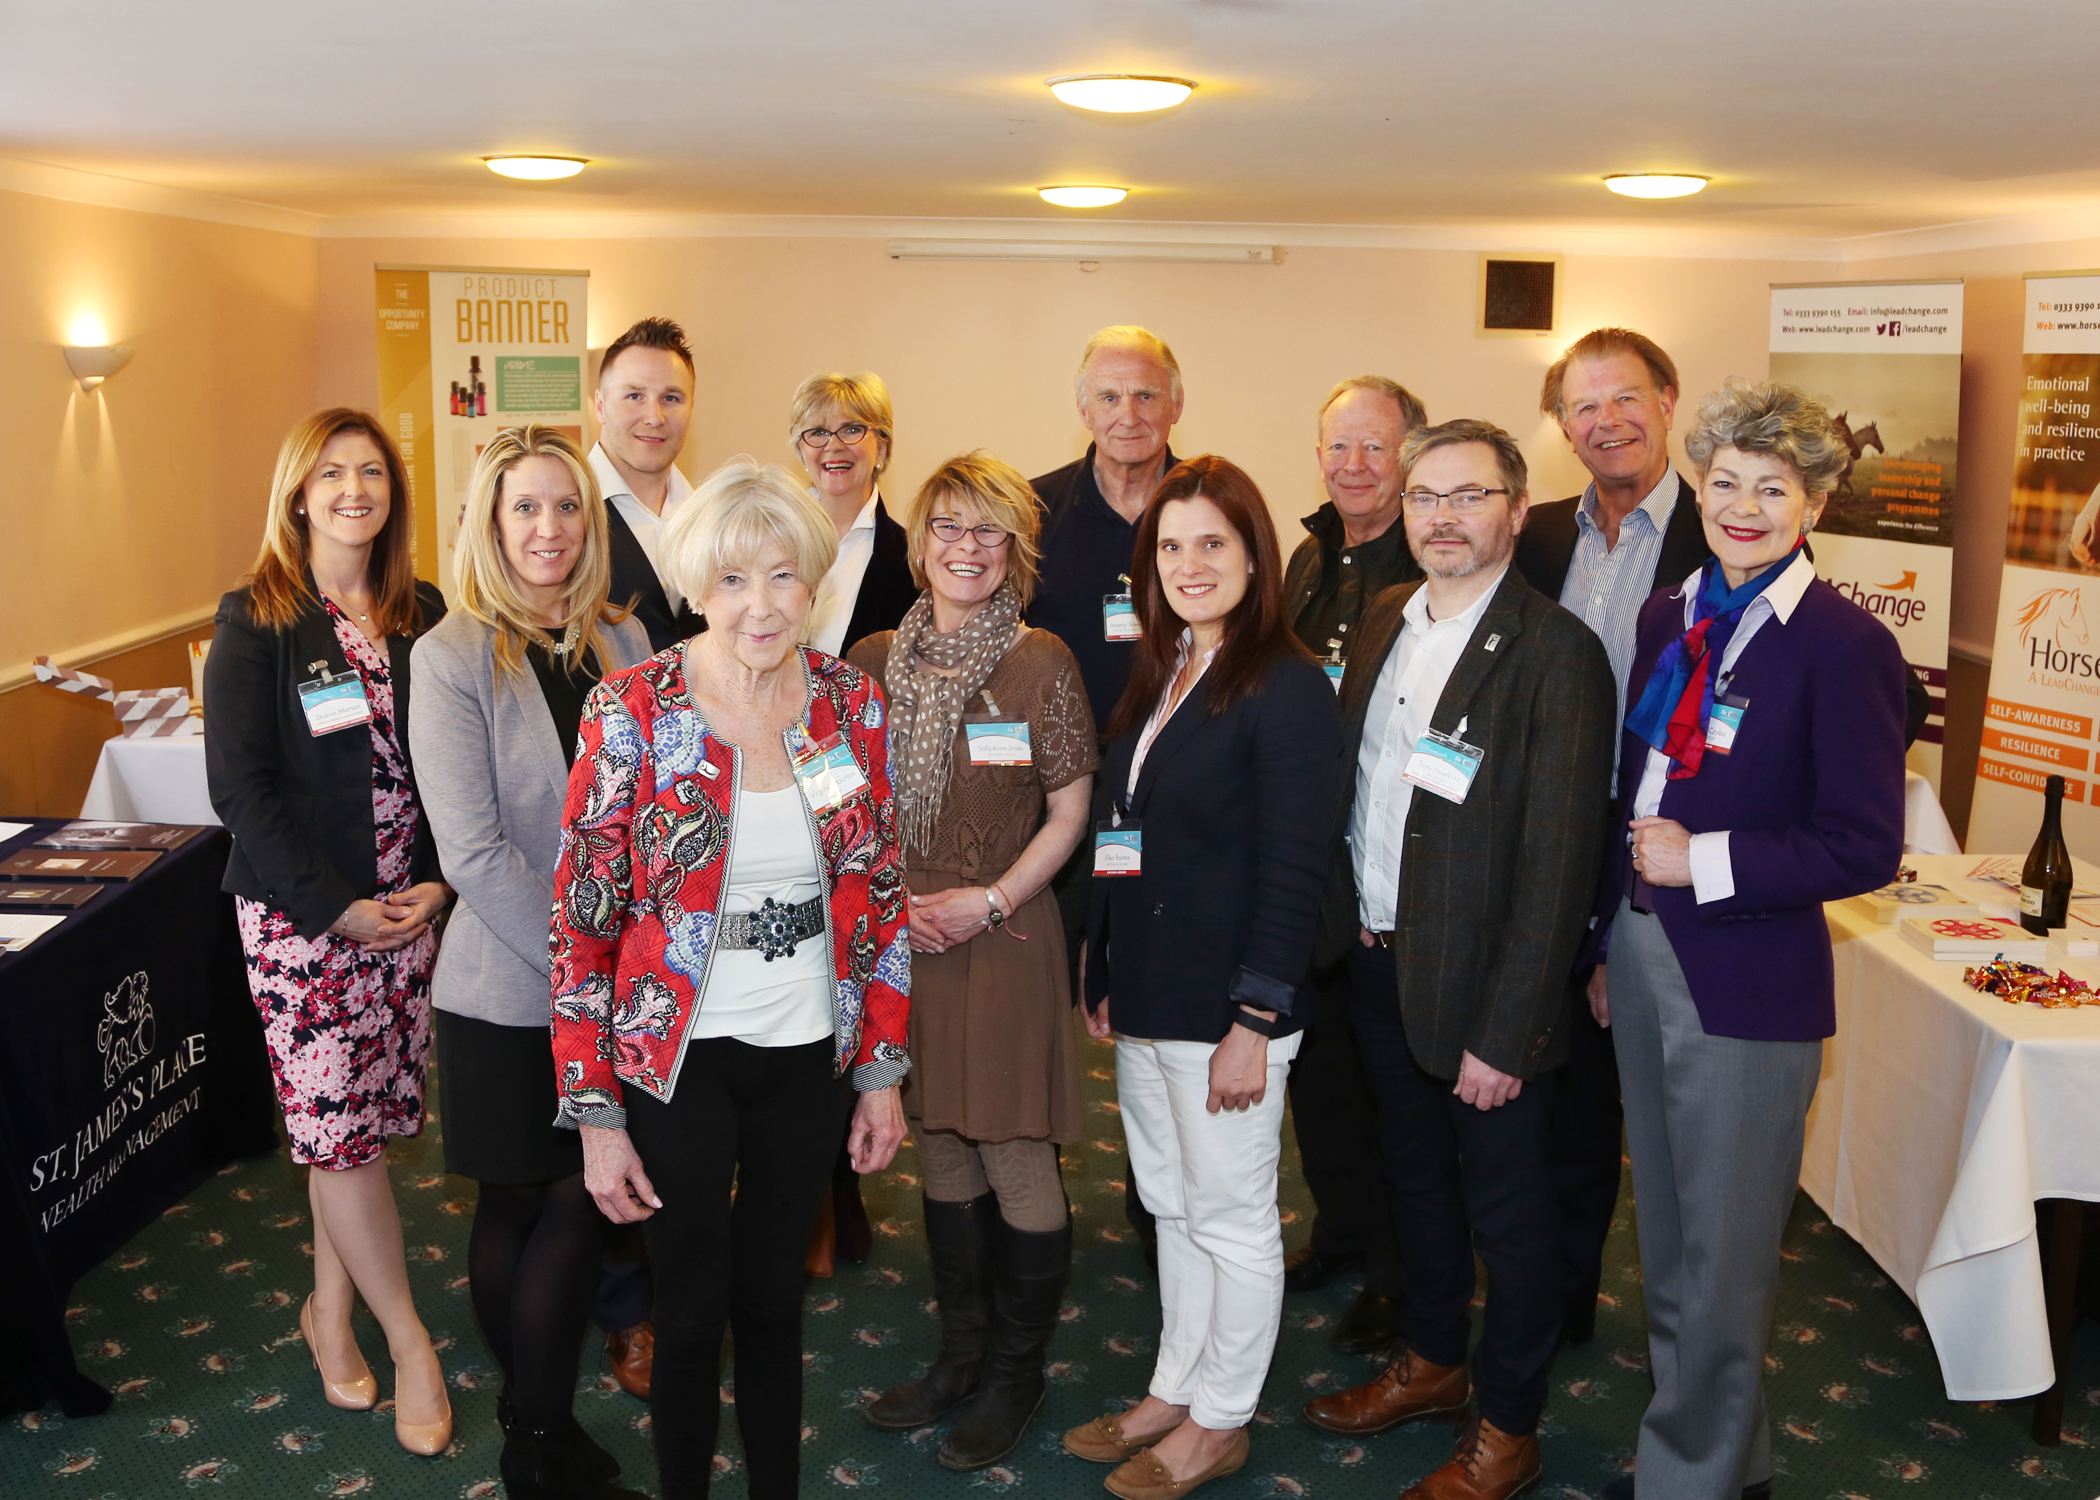 New format brings in new members for popular networking group